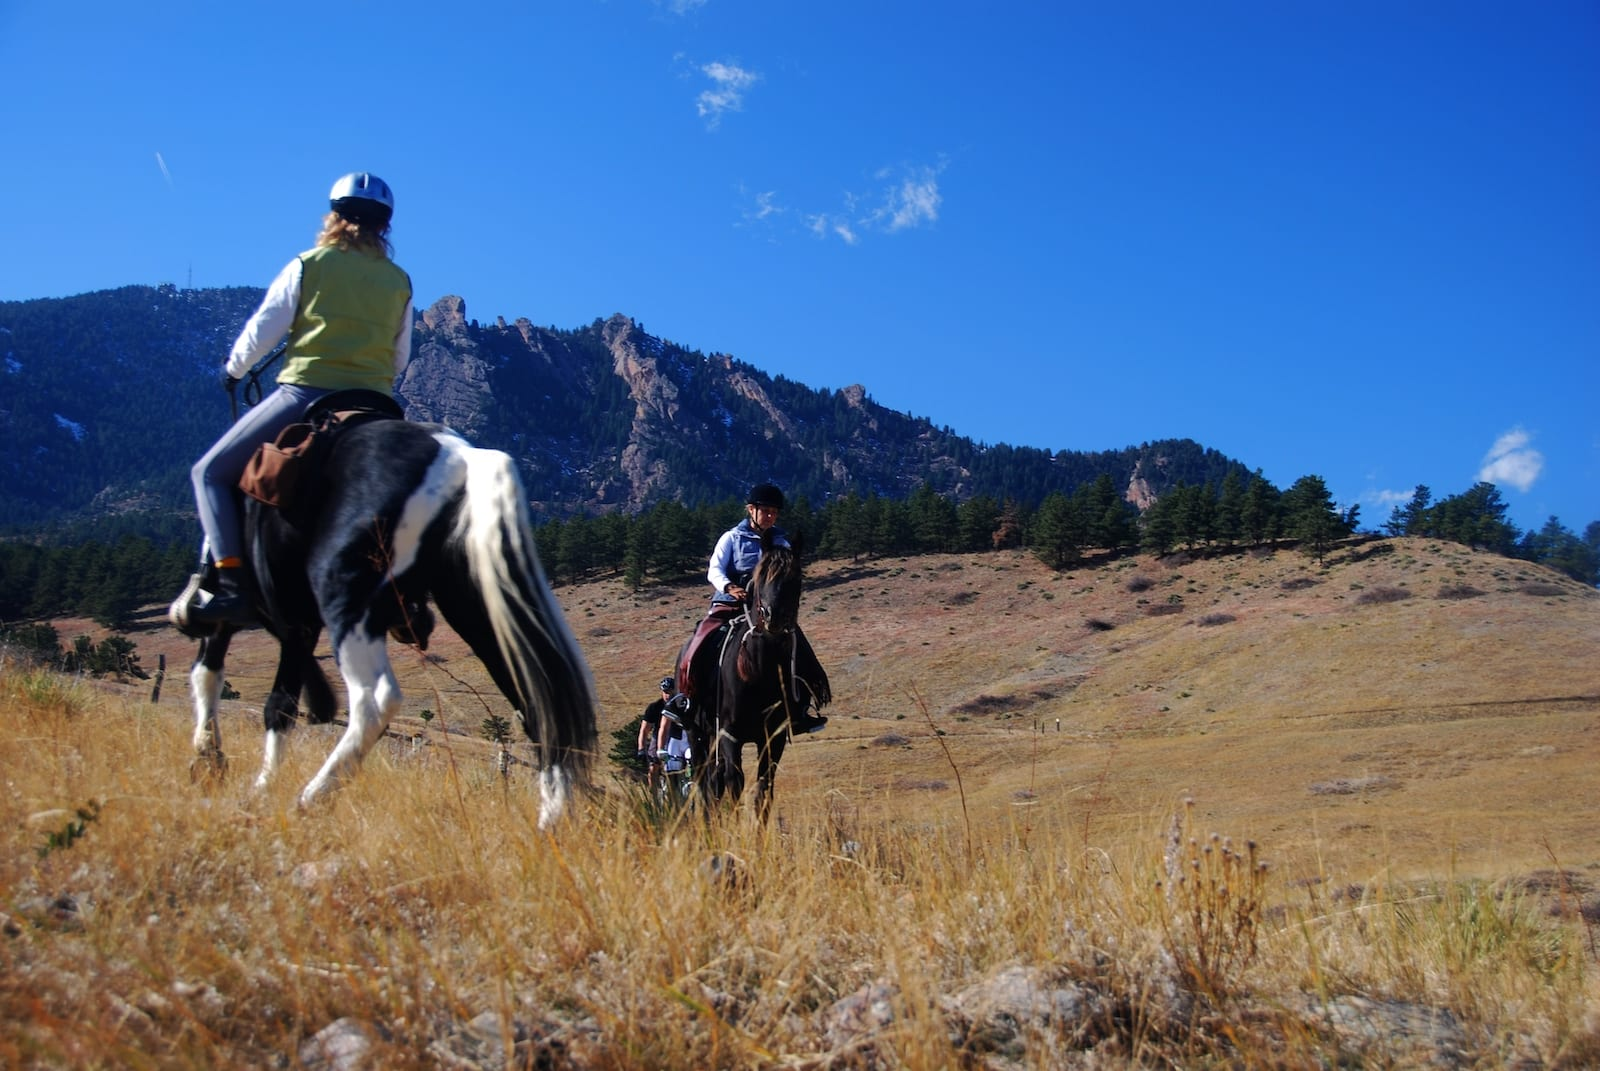 Hiking Etiquette Horseback Riders and Bikers on Hiking Trail Eldorado Springs Colorado